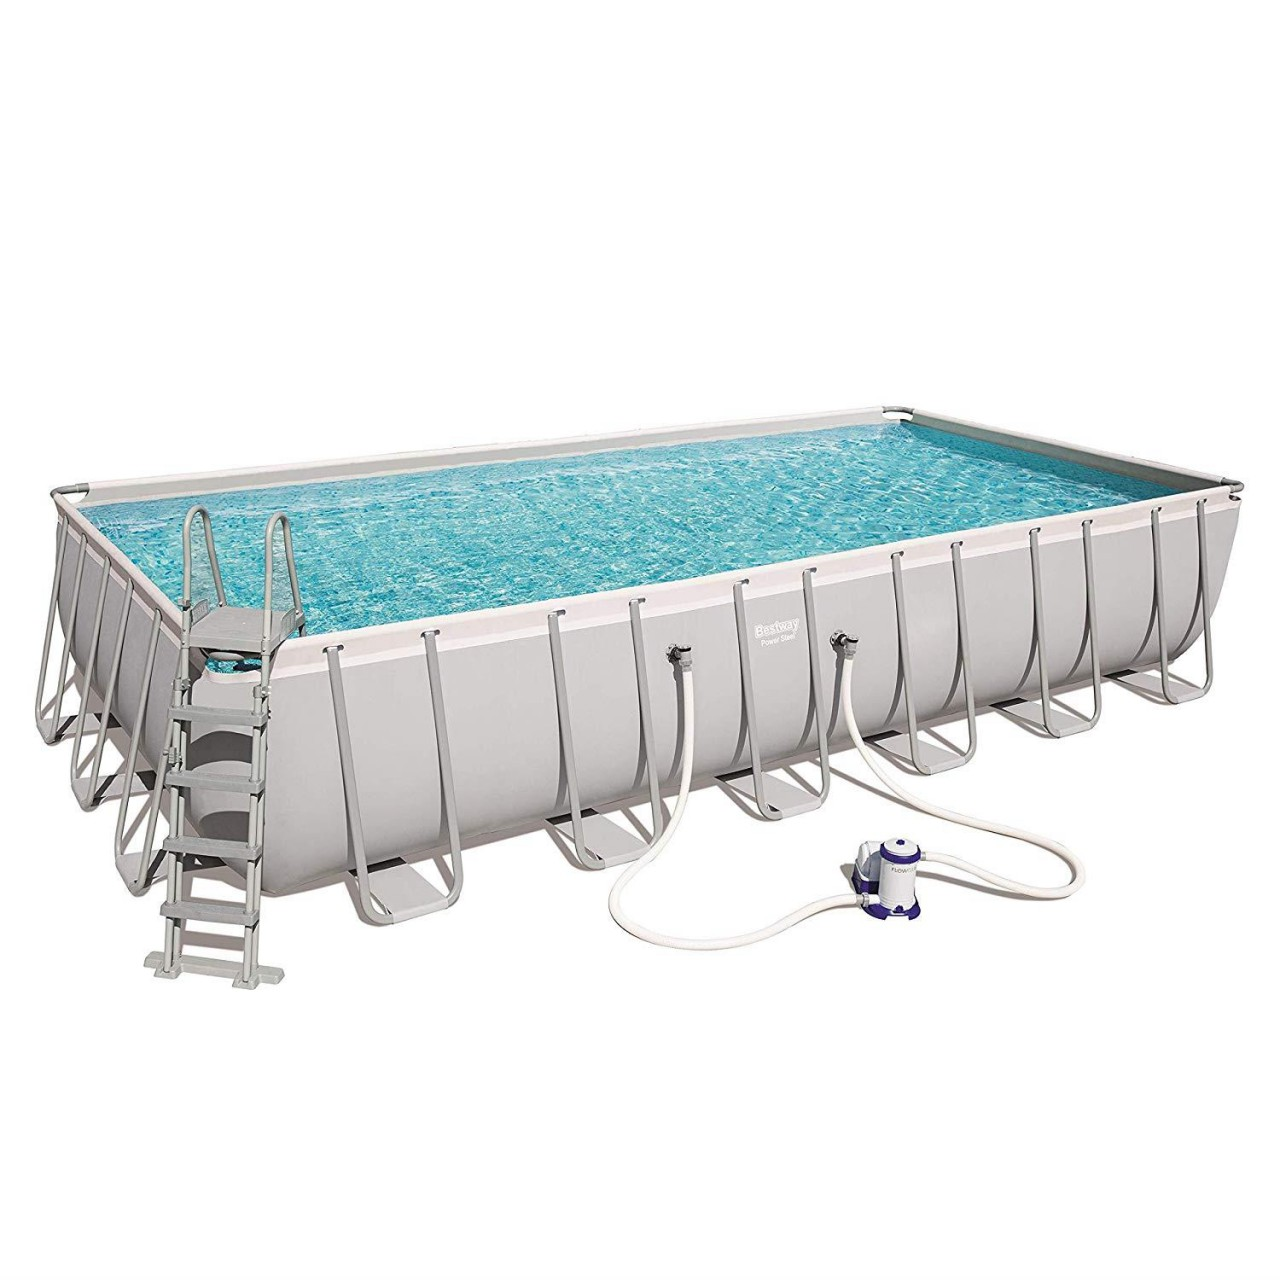 Bestway 56474 Power Steel Rectangular Pool Set 732x366x132 cm